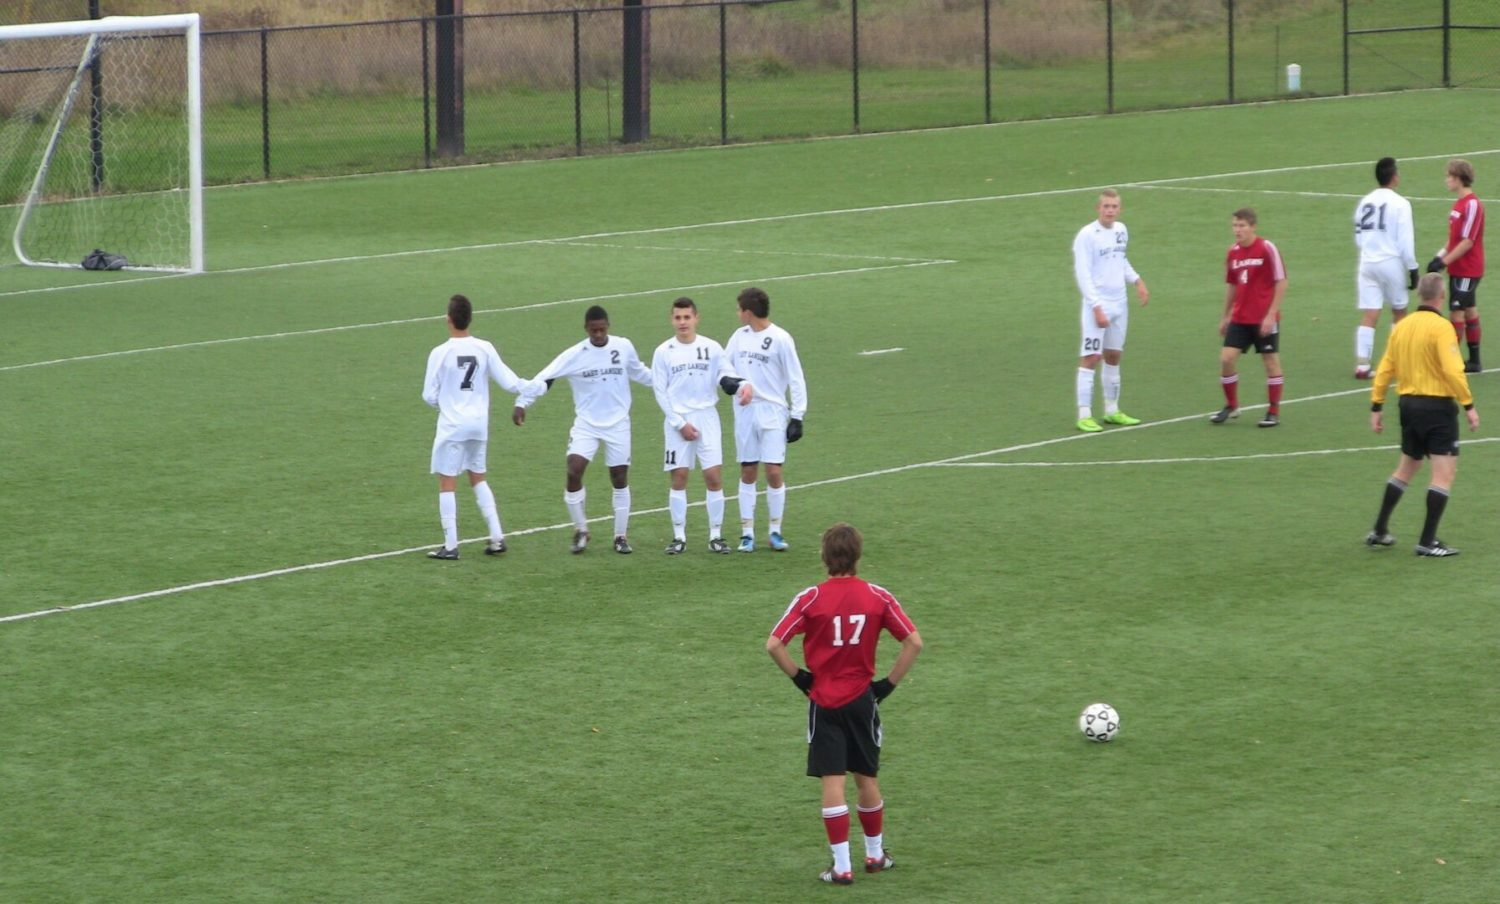 Spring Lake's Cinderella story ends with a 2-0 loss to East Lansing in Division 2 state soccer finals